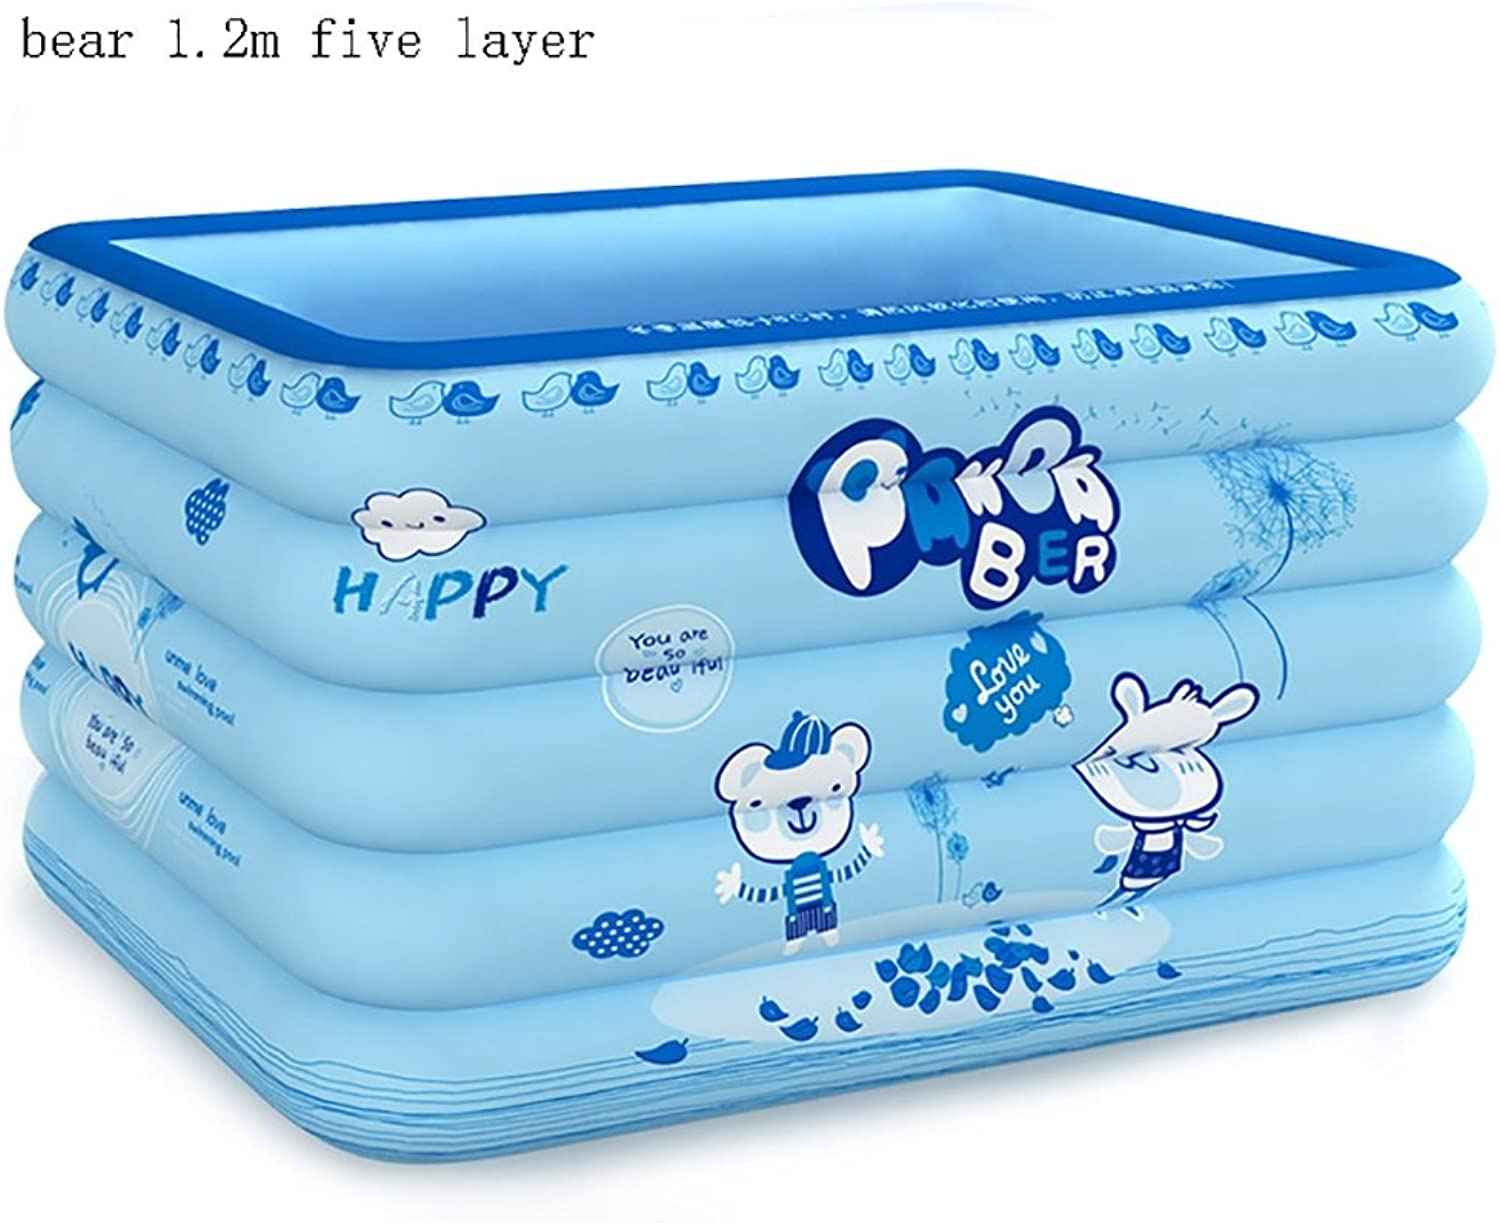 Folding Tub Swimming Pool Inflatable Home Thickened Indoor Marine Ball Swimming Pool With Hand Pump (color   1.2m bear)